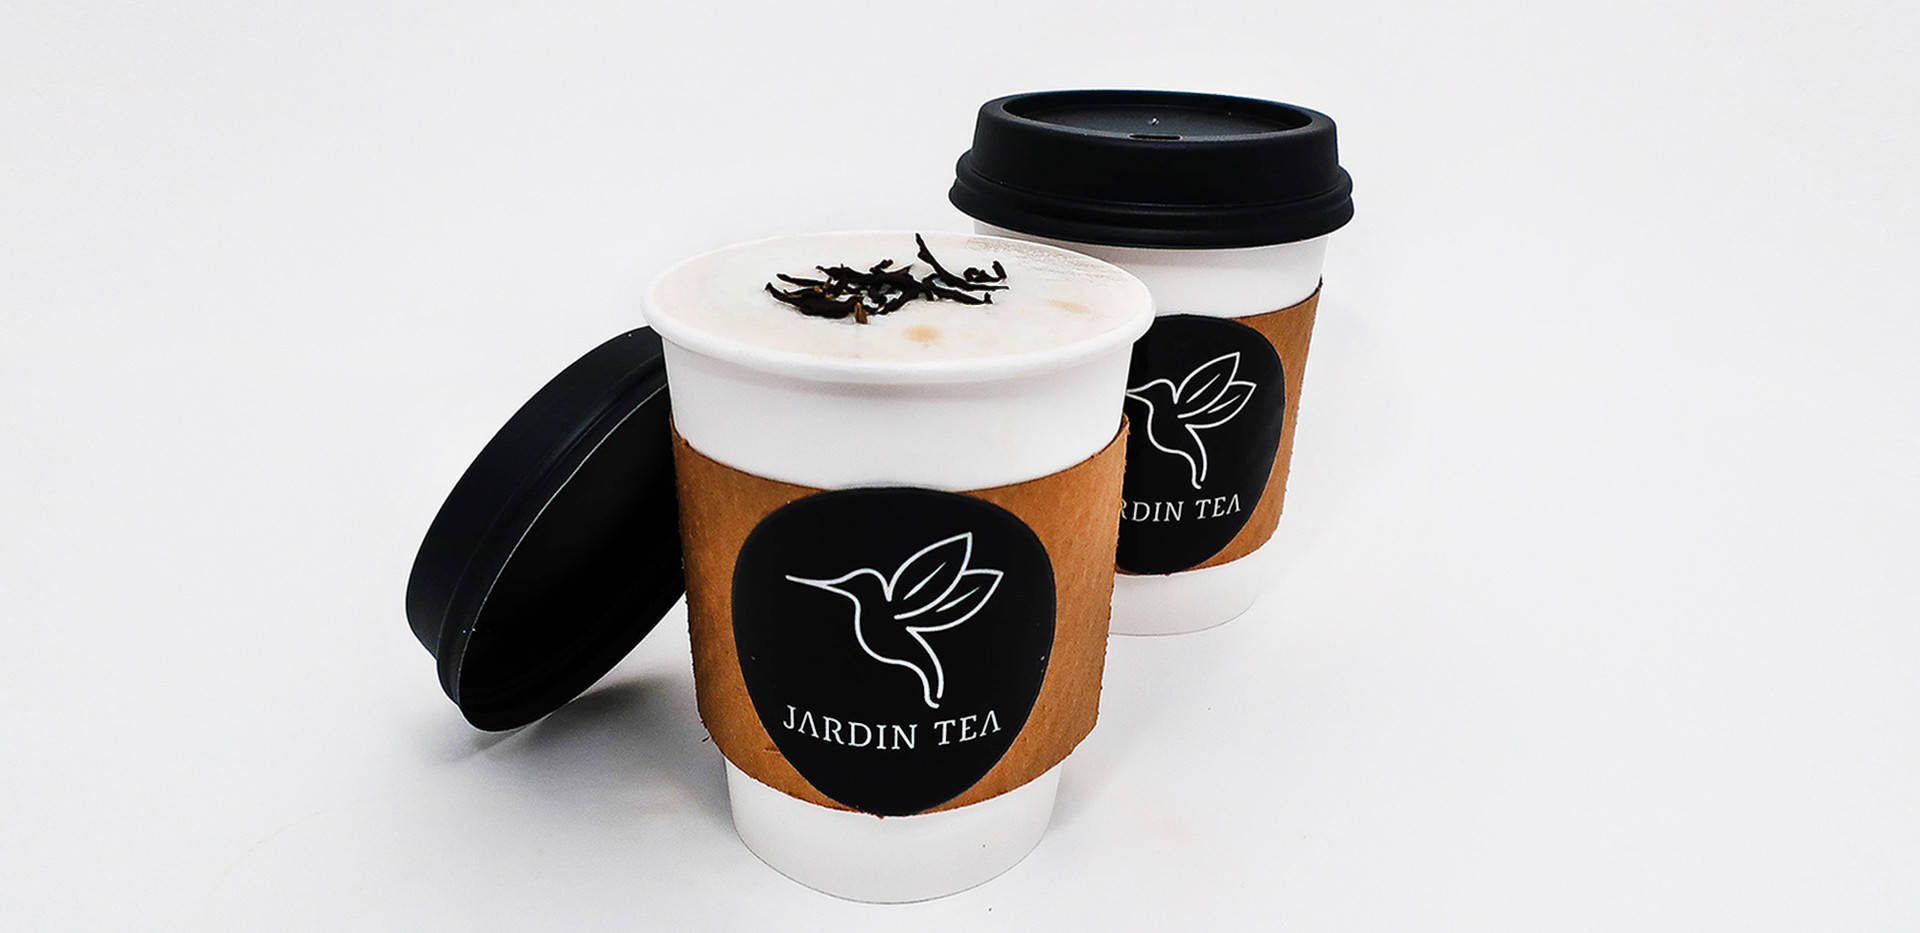 Jardin Tea Hot Tea Latte